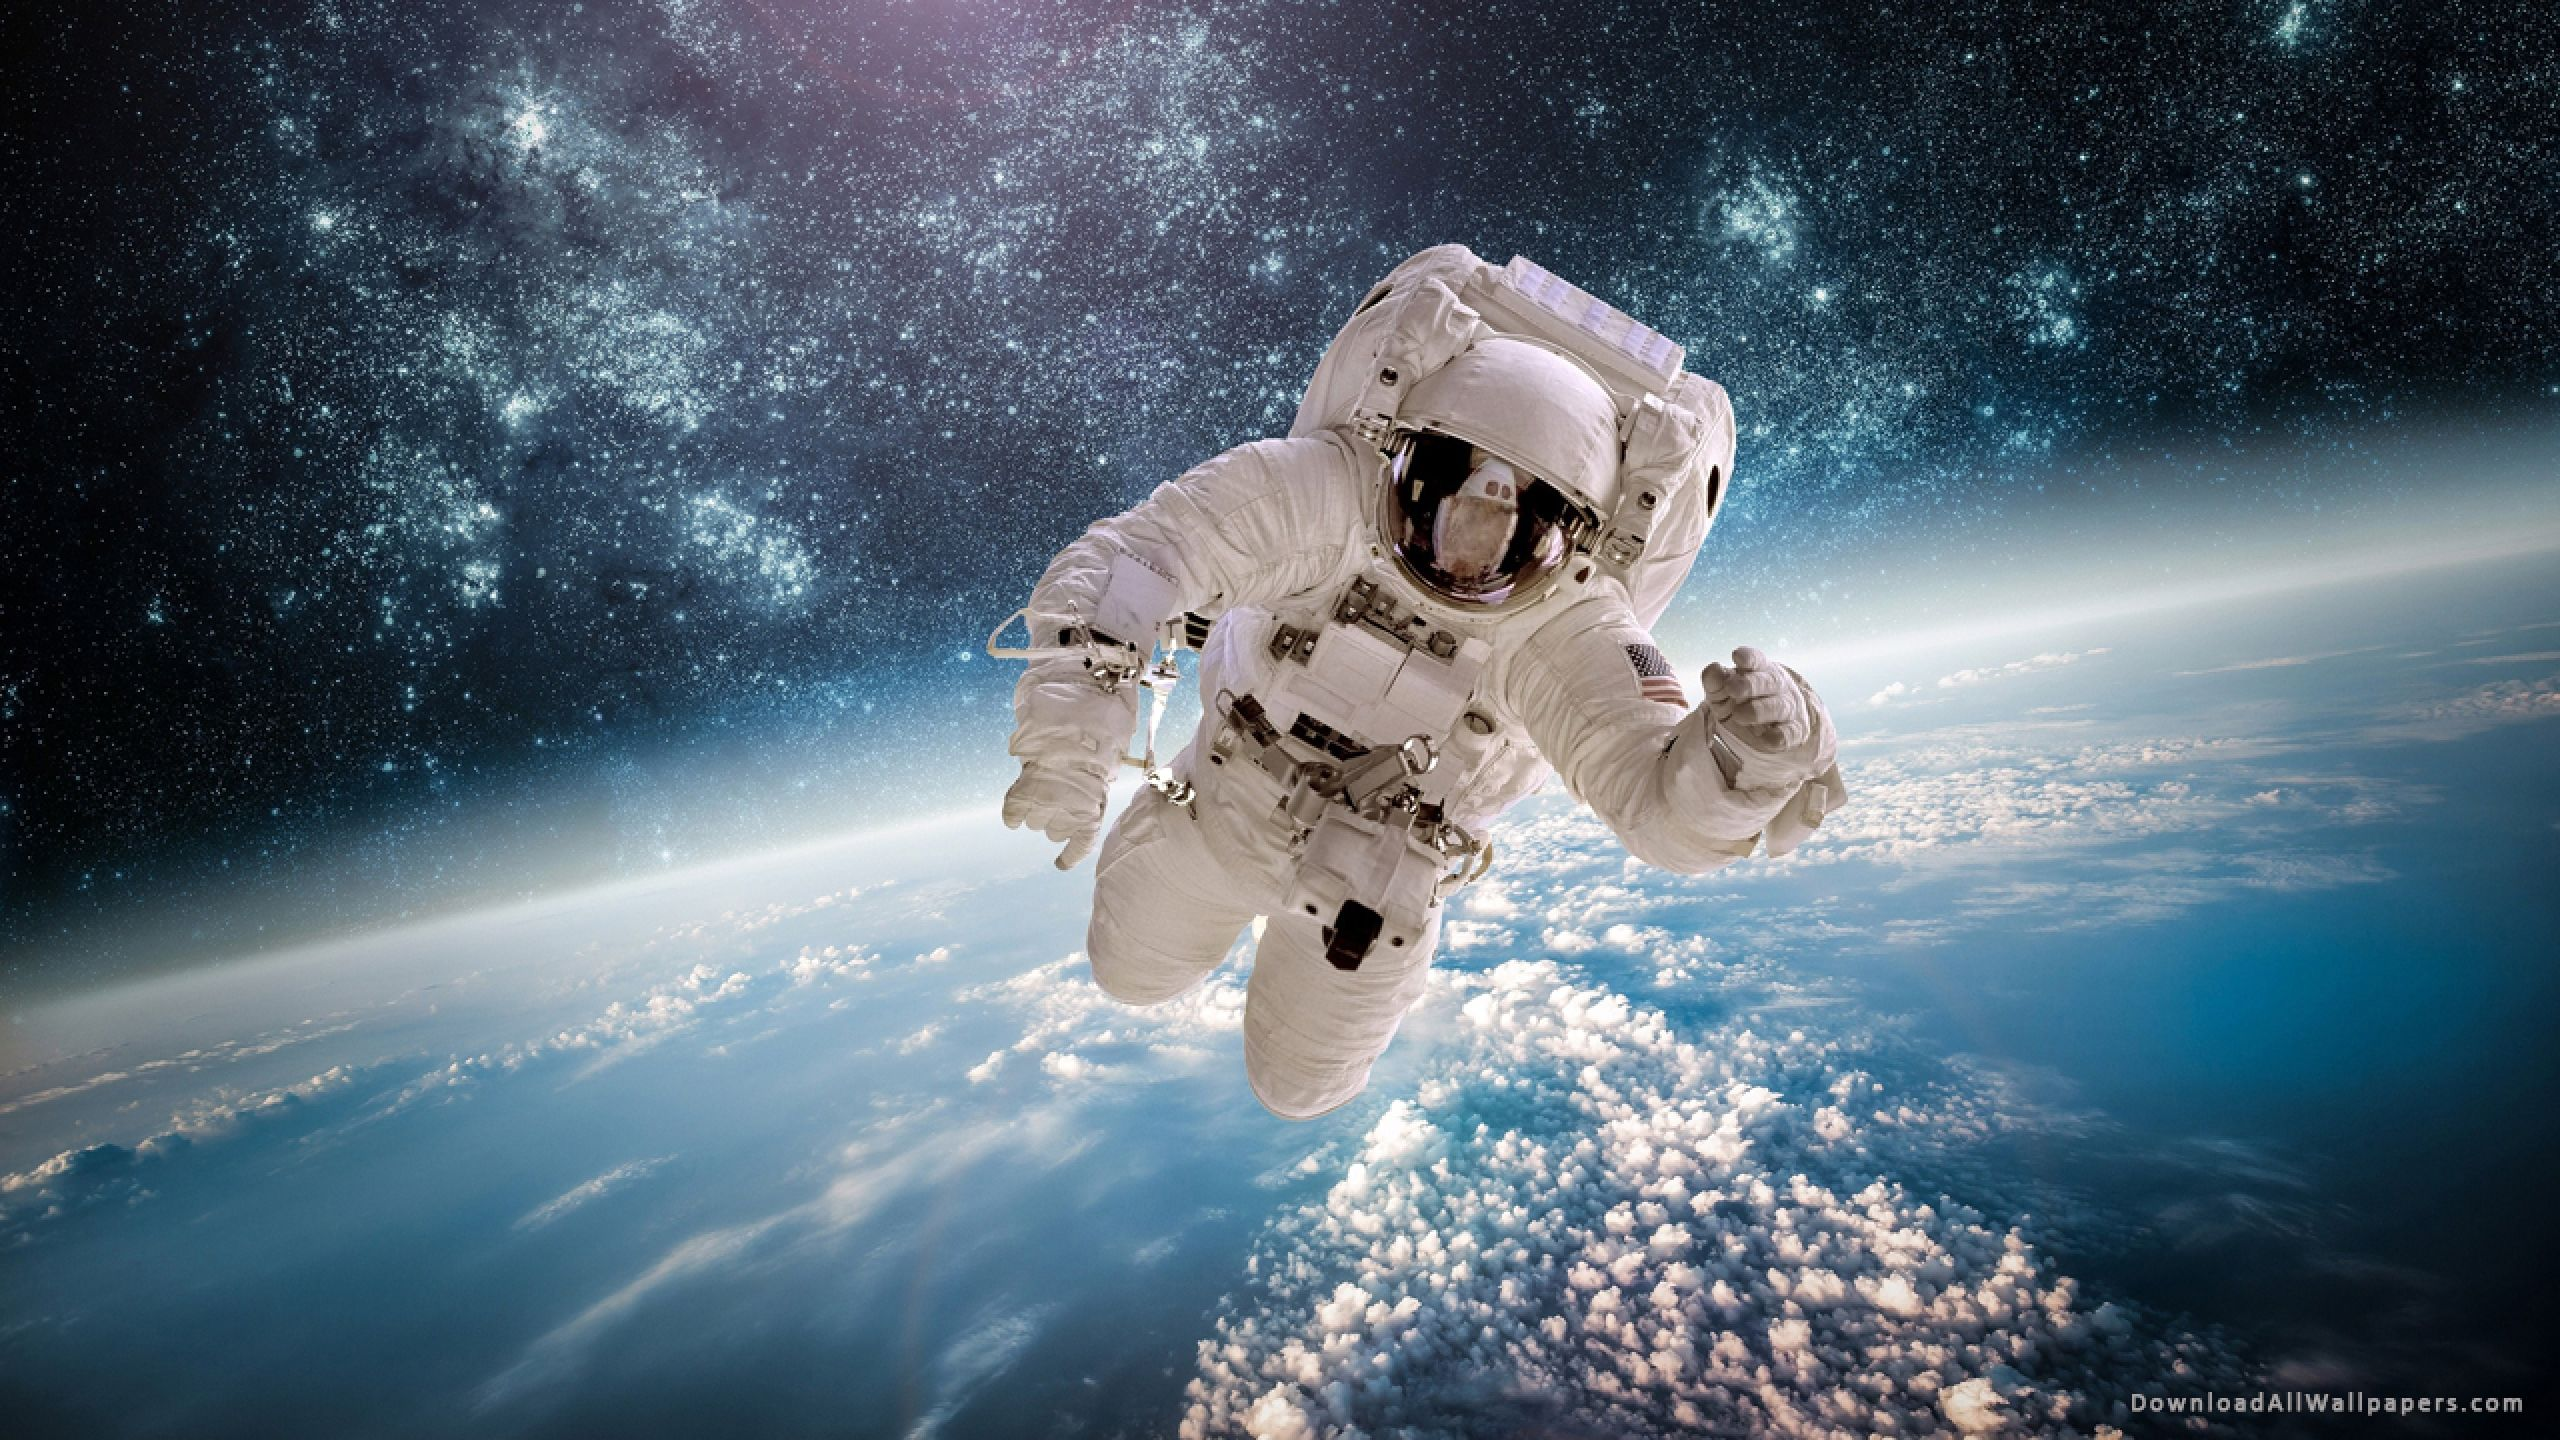 Astronaut Flying In The Space Wallpapers Wallpaper Cave